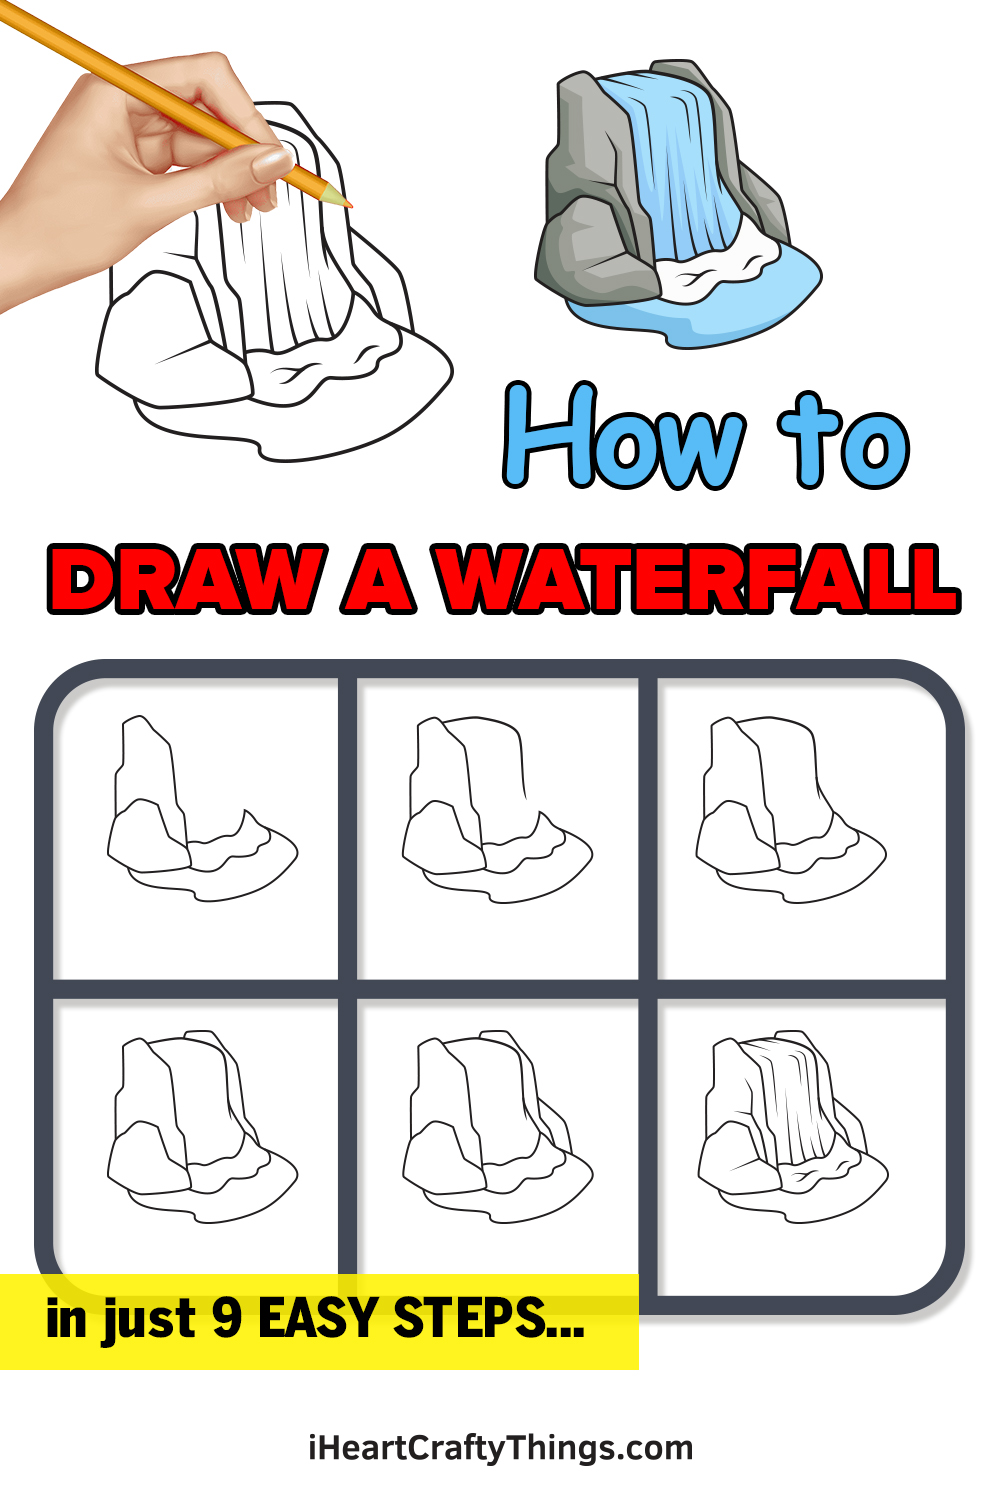 how to draw a waterfall in 9 easy steps